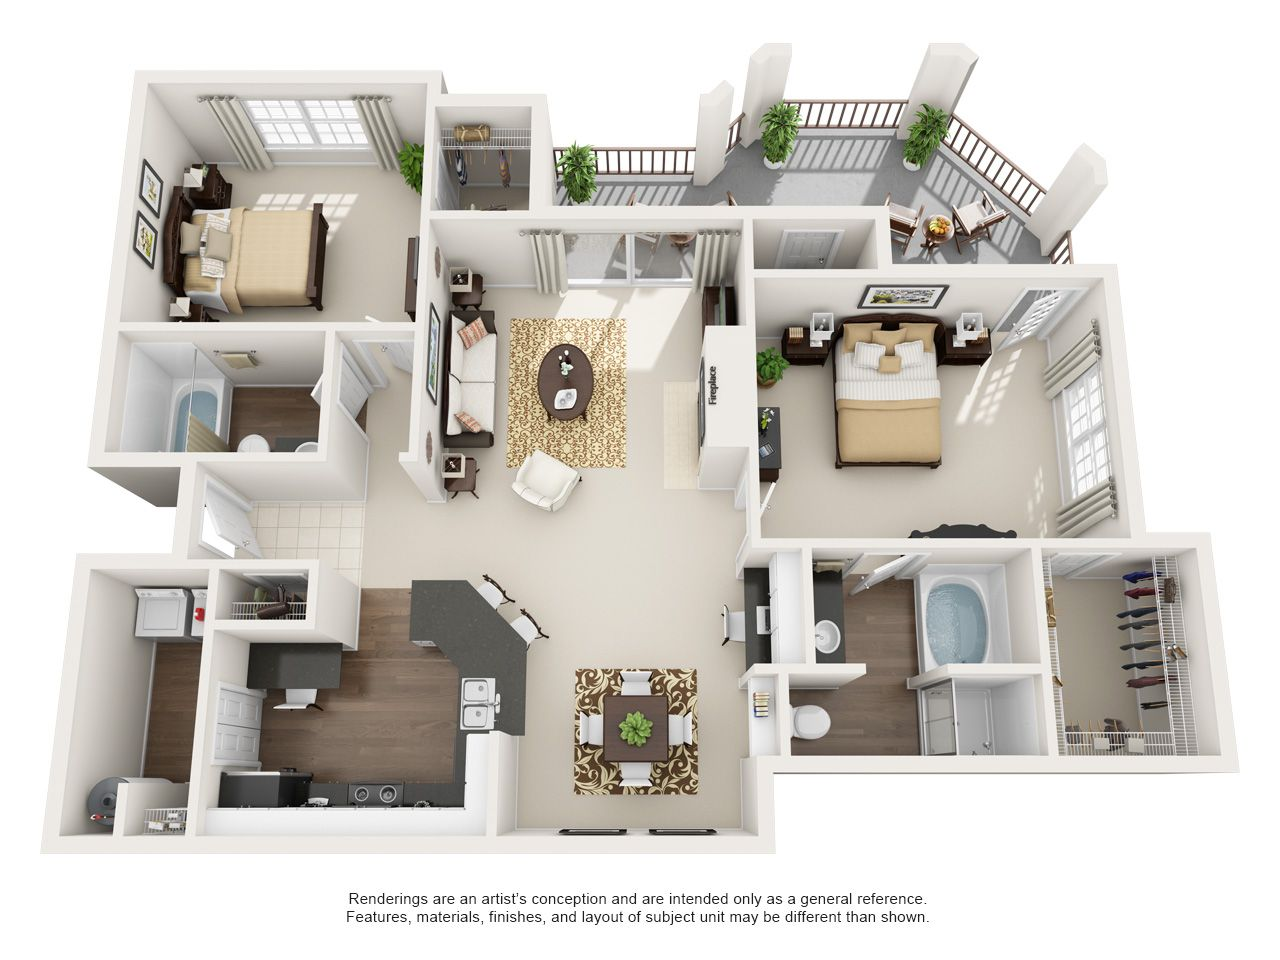 1 2 And 3 Bedroom Apartments Monticello By The Vineyard Sims House Plans House Layout Plans Apartment Floor Plans